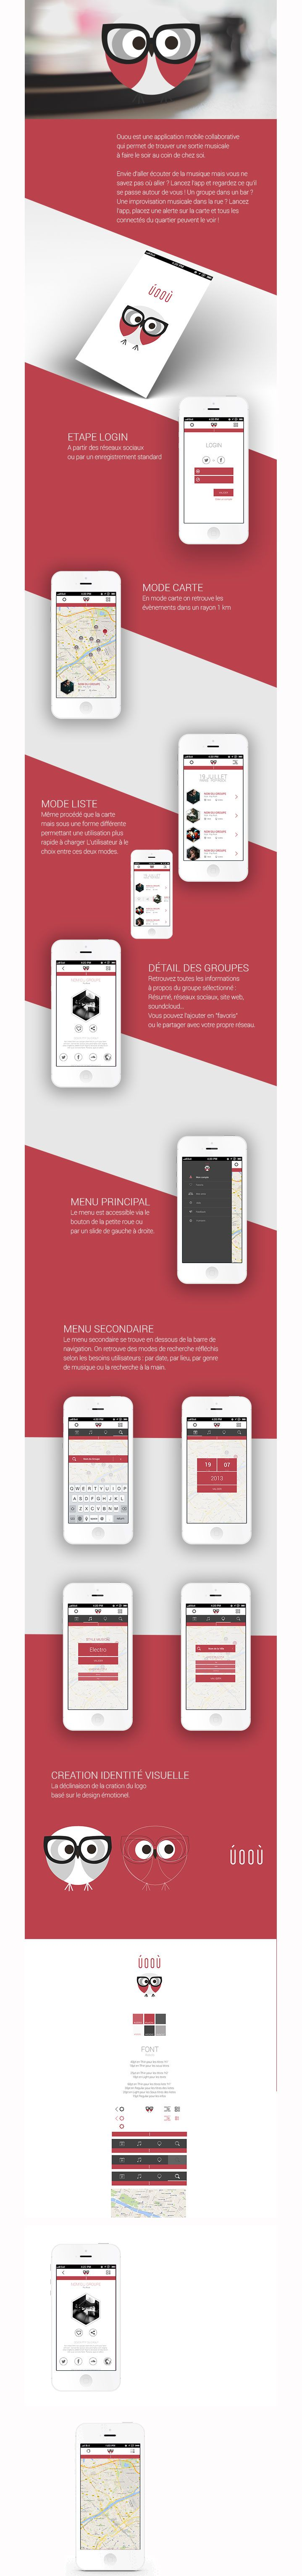 Mobile app design - nice colours and i love the owl logo. #mobile #webdesign #layout #design